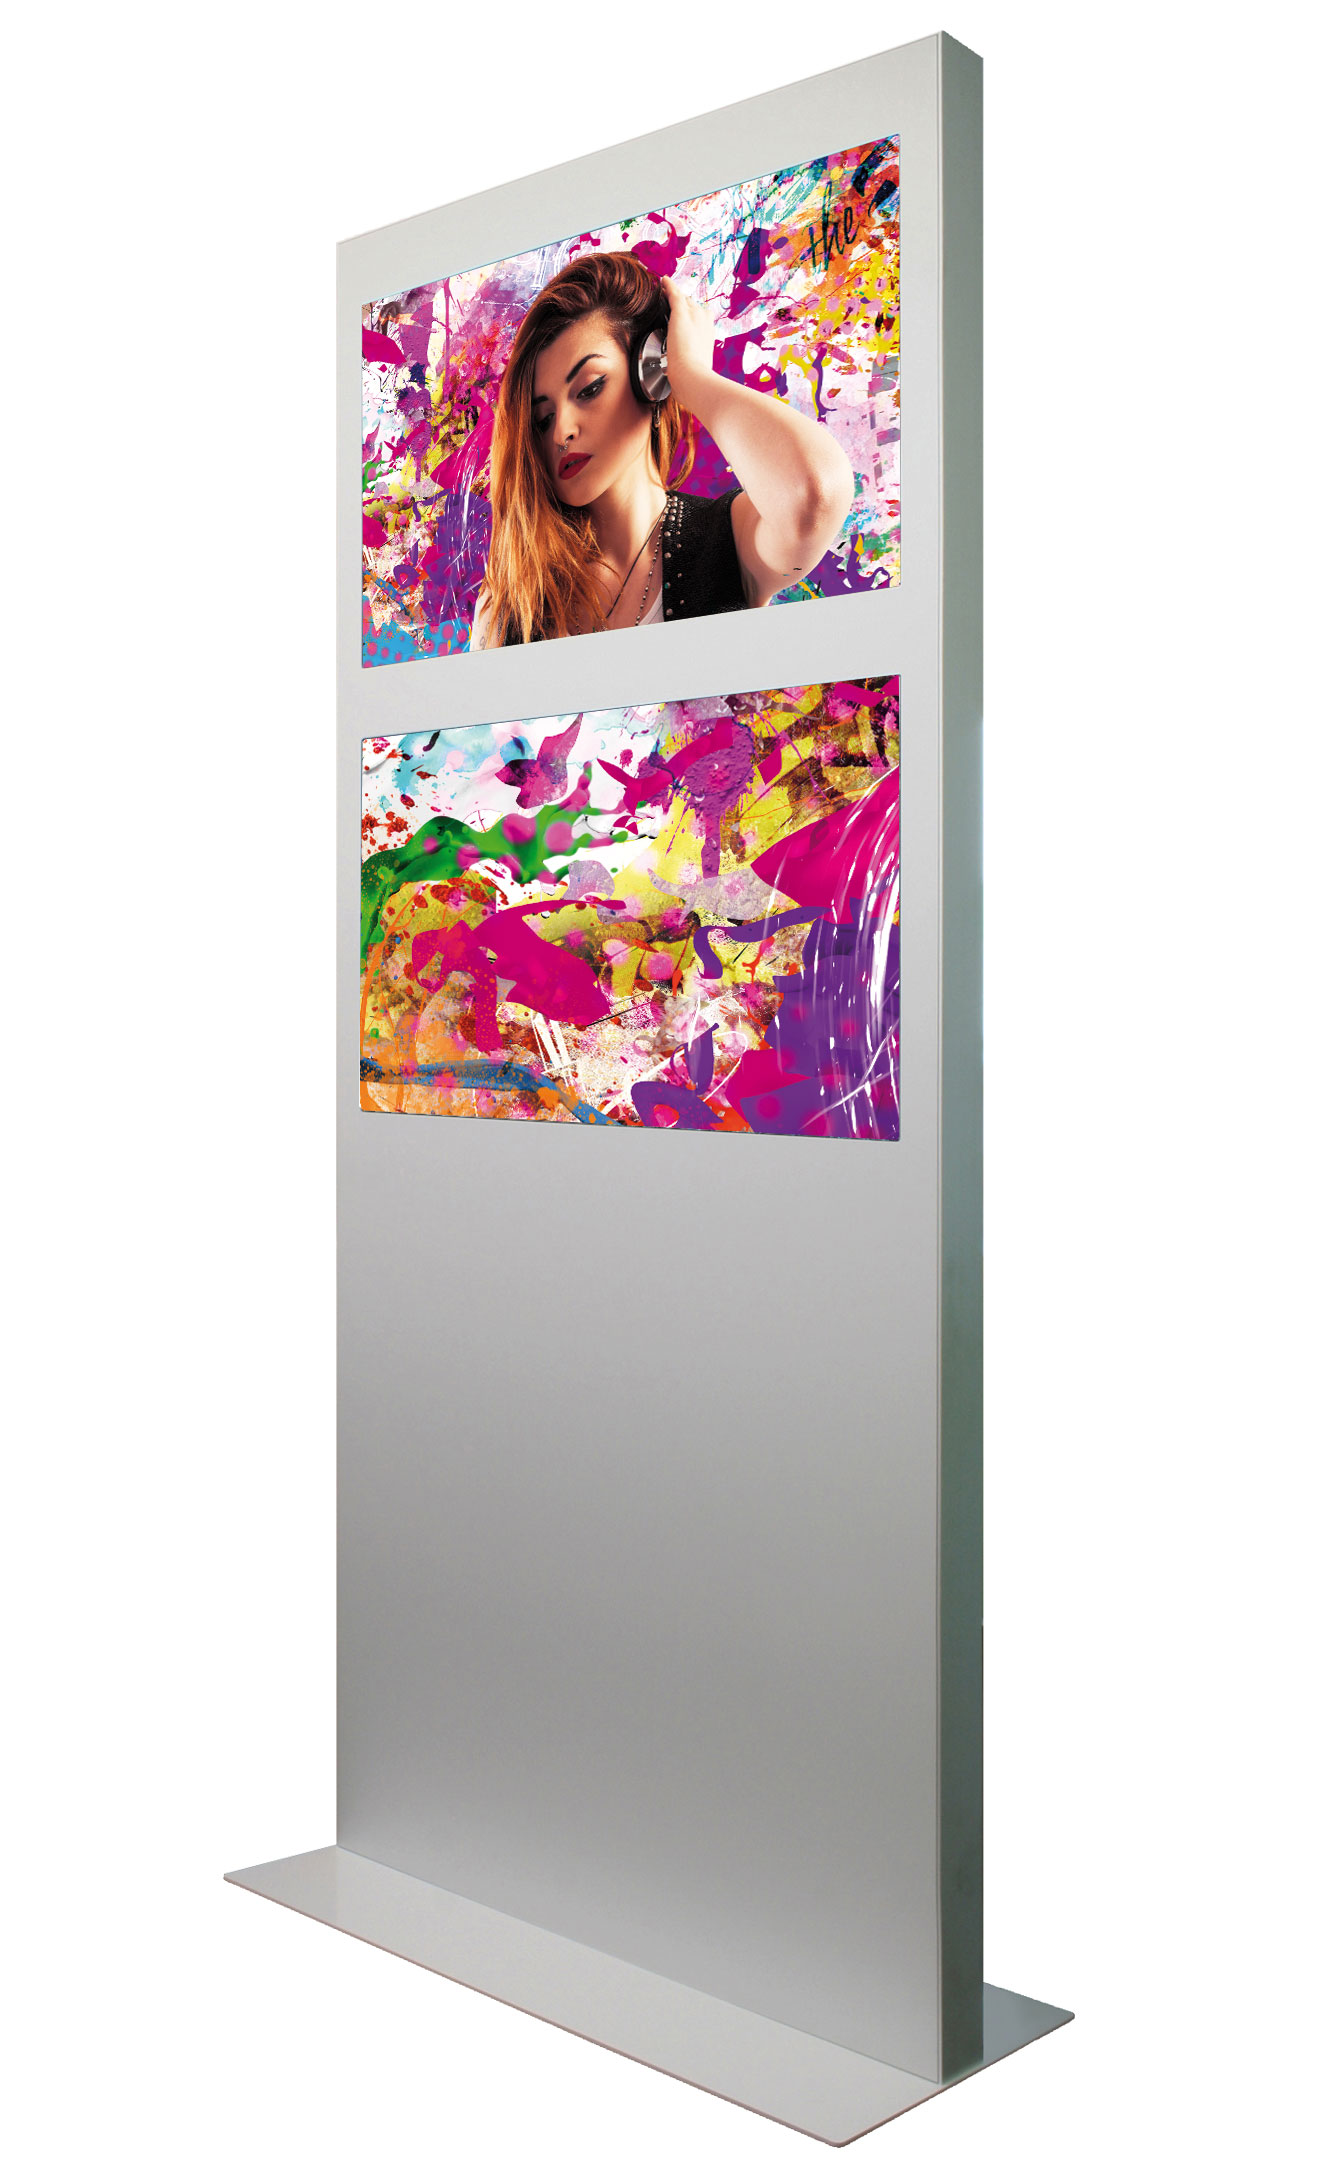 2 Screen Digital Signage